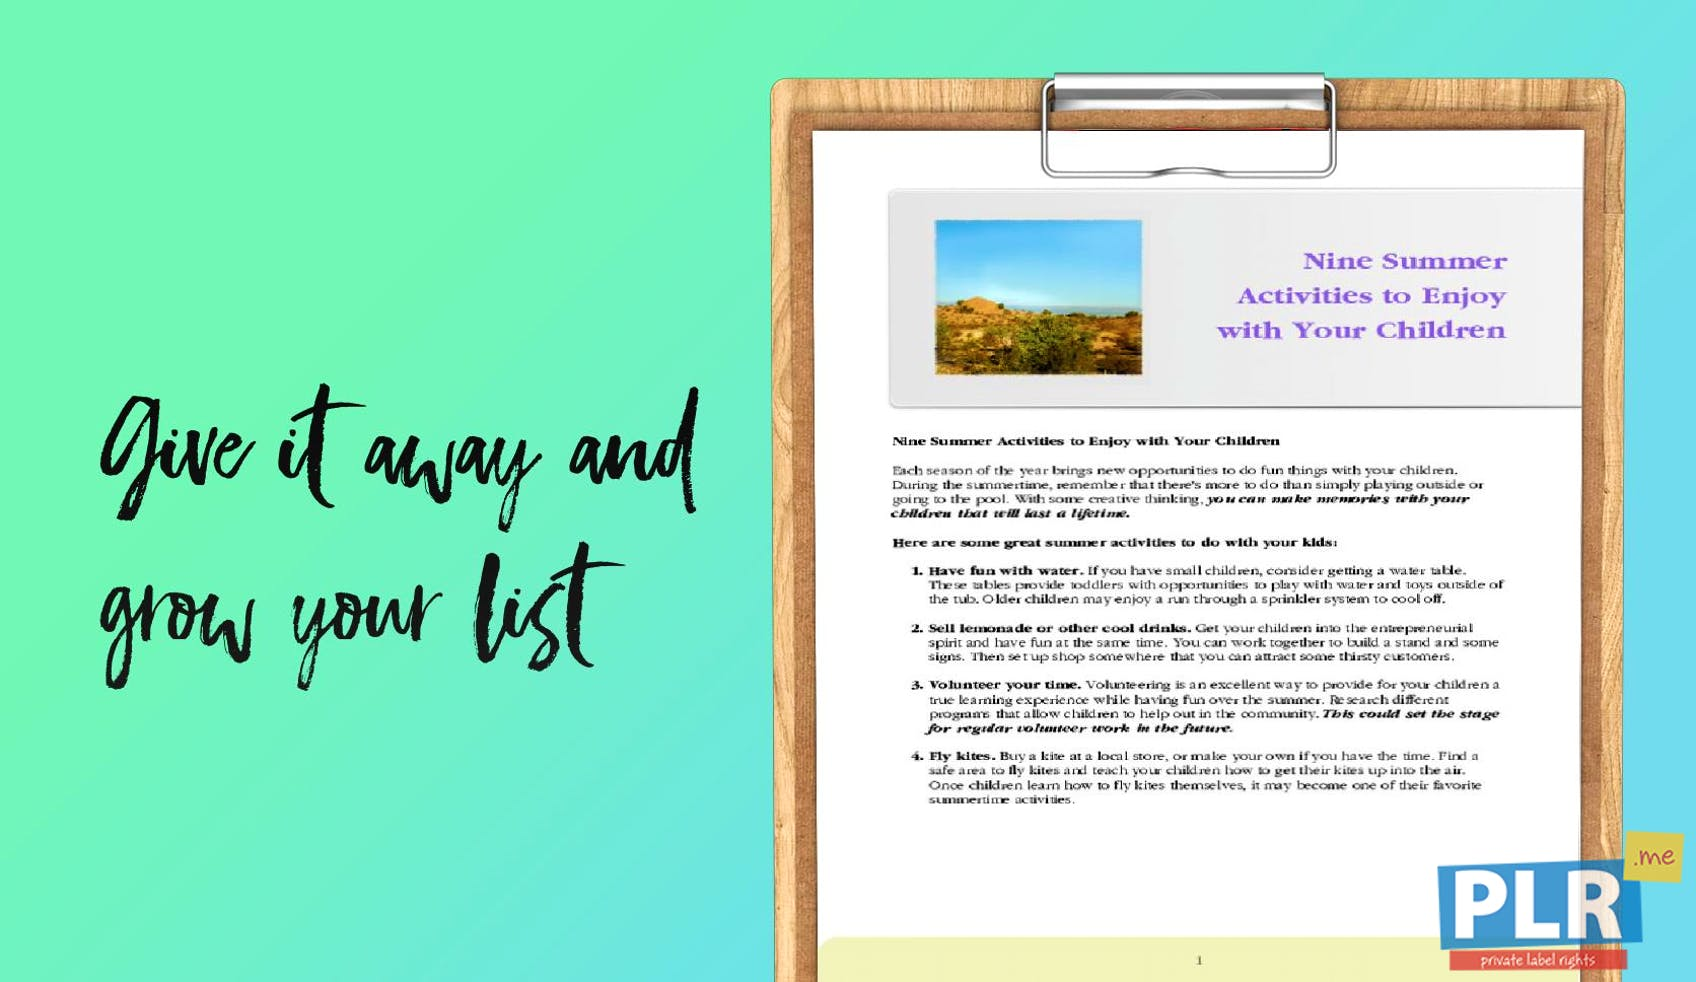 Plr Articles Blog Posts Nine Summer Activities To Enjoy With